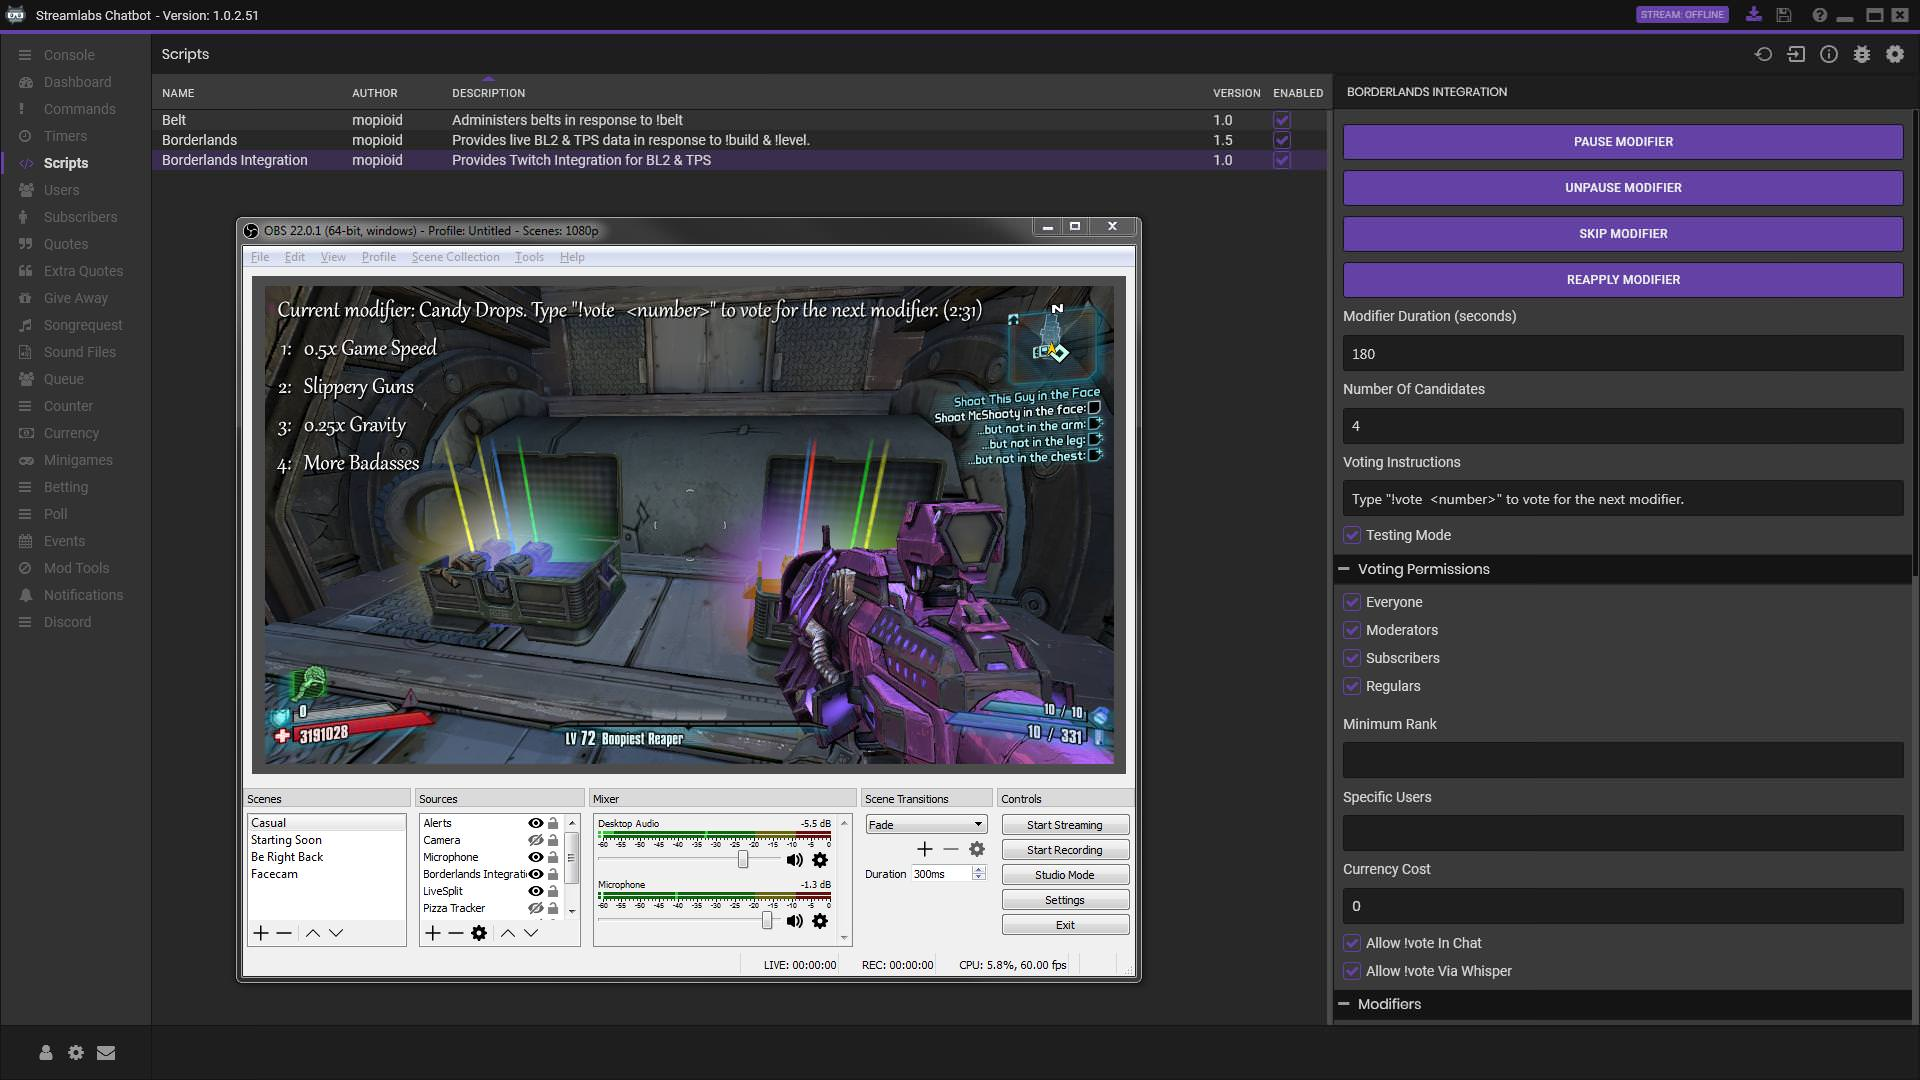 Borderlands-Twitch-Integration/README md at master · mopioid